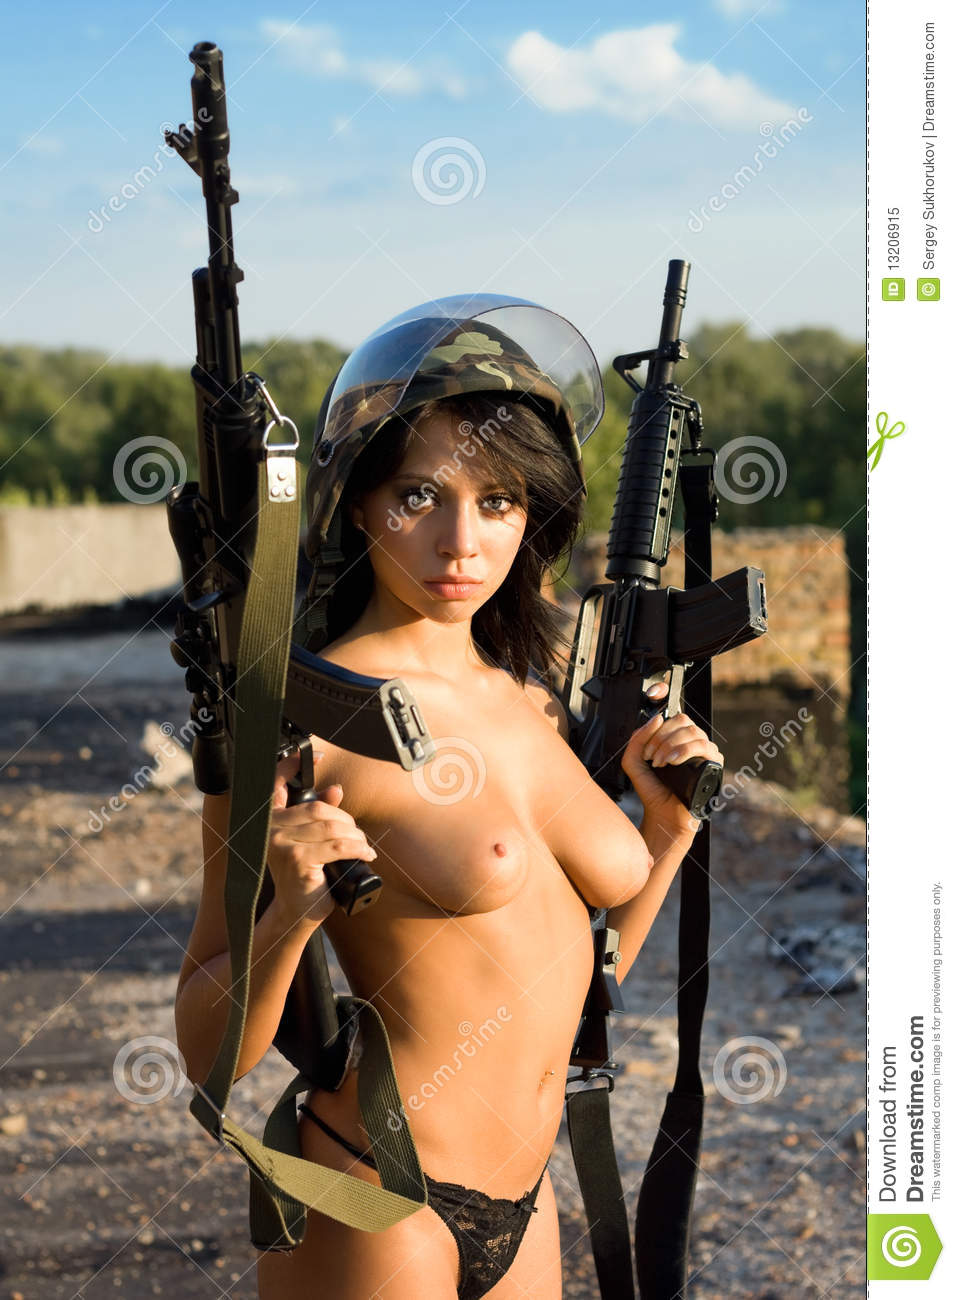 Nude women and guns